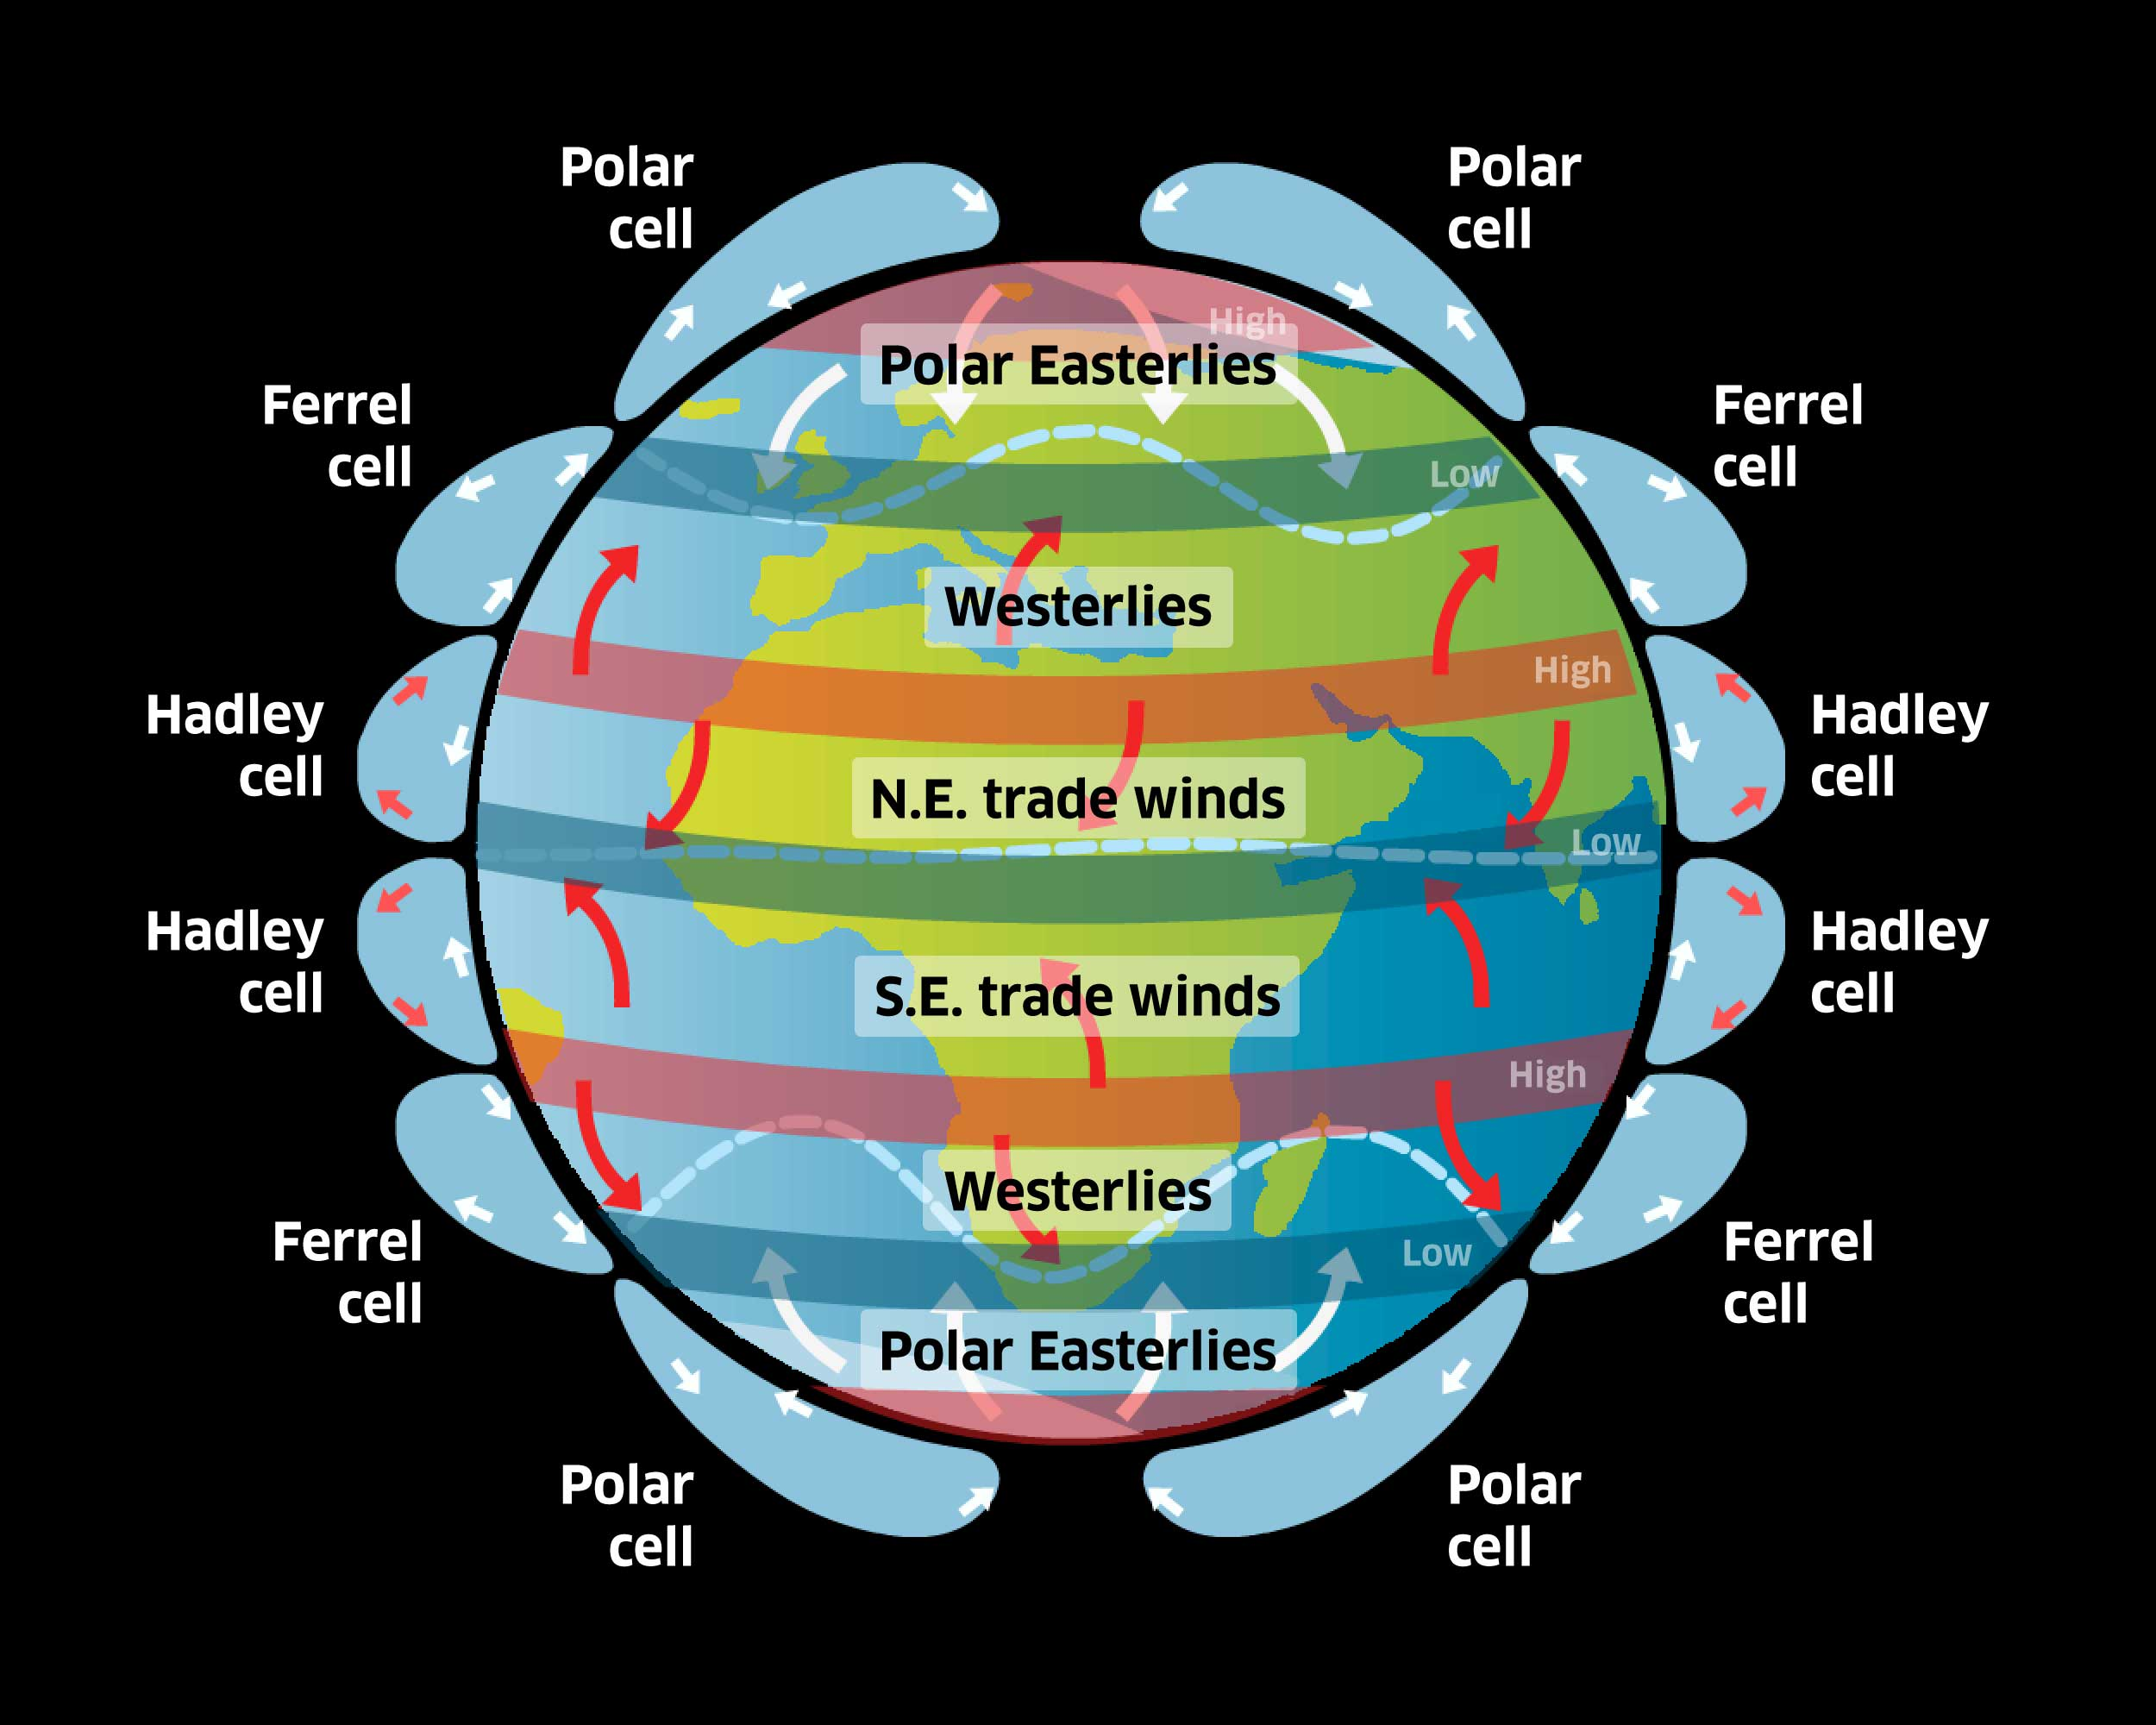 Illustration of the world's climate system